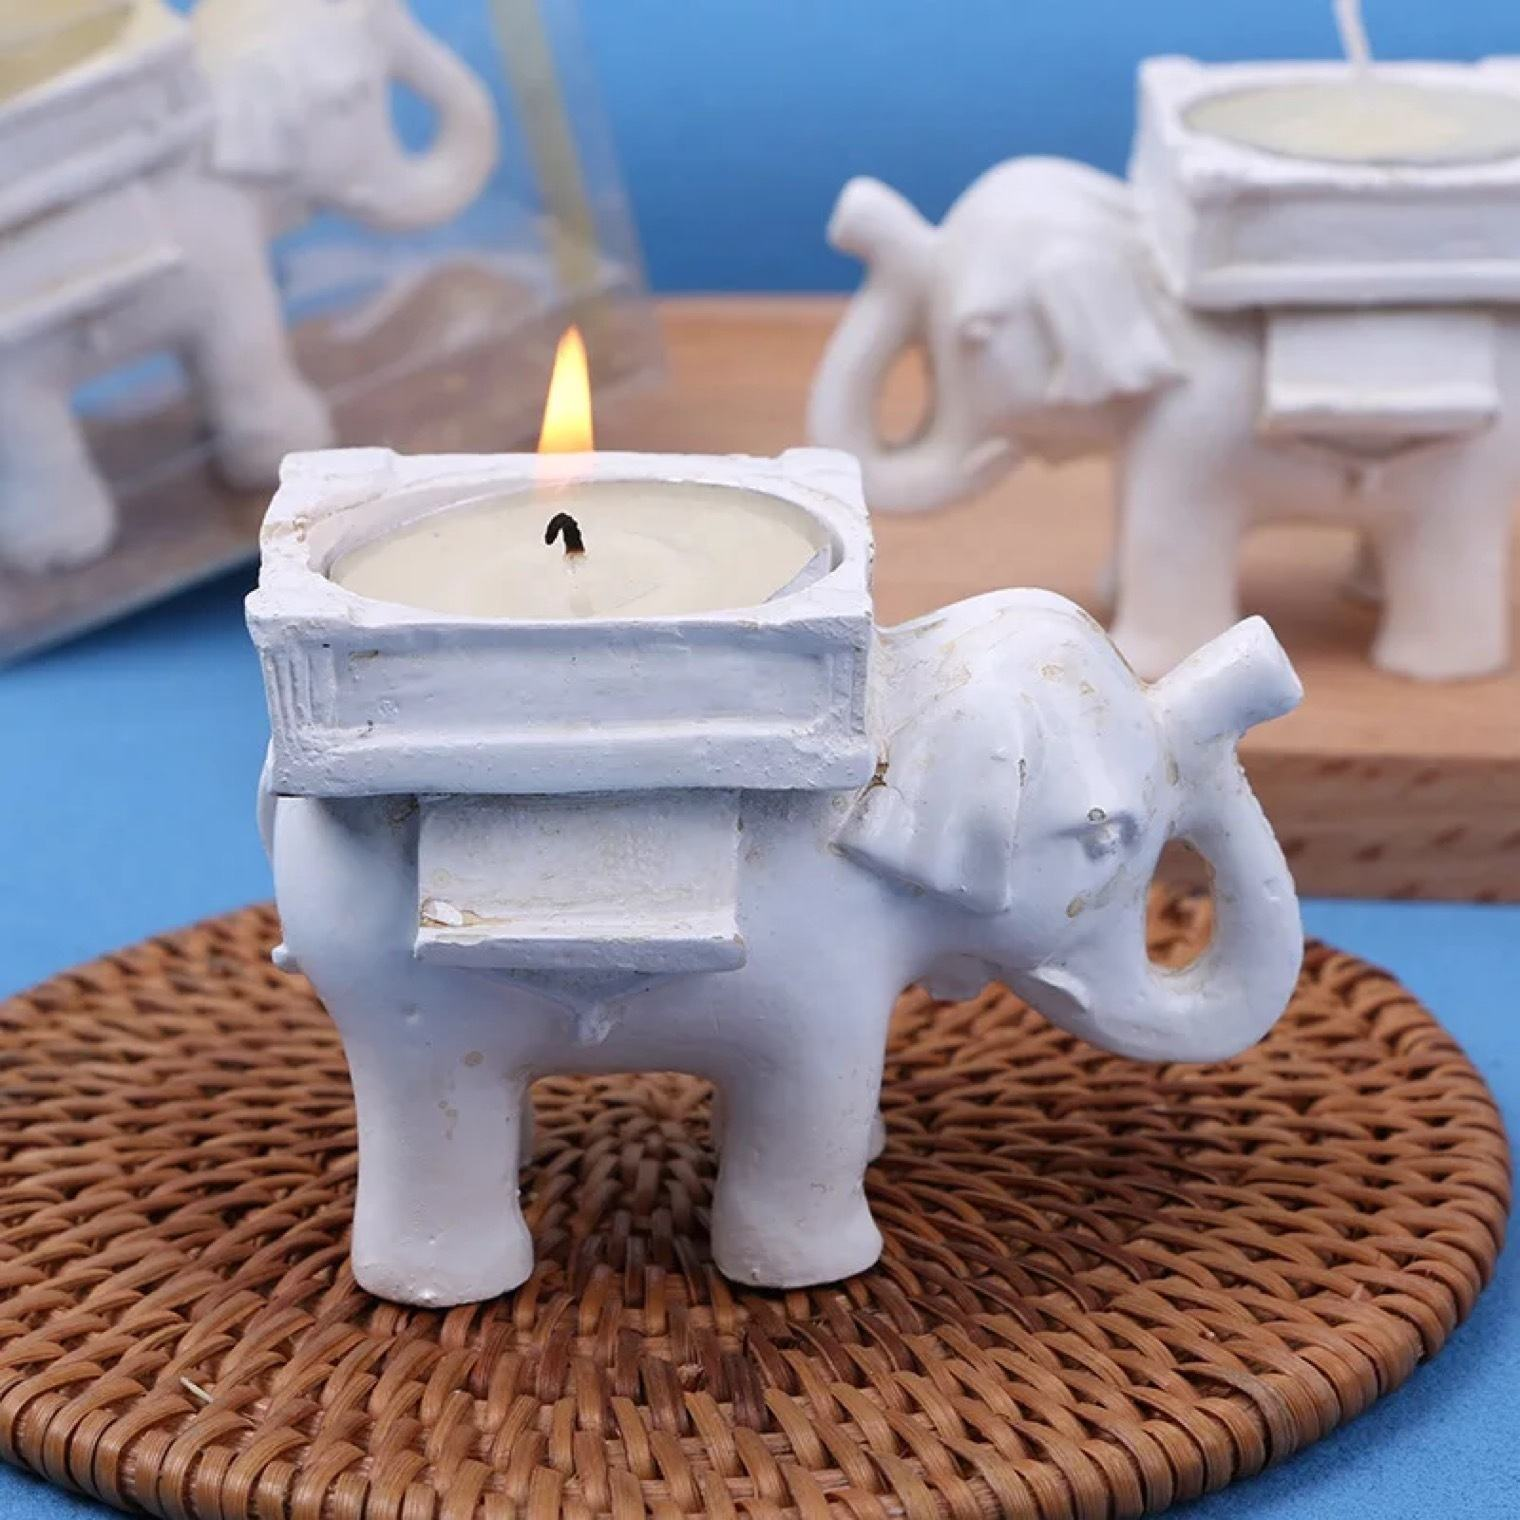 Decorative wedding centerpieces Gift Resin Elephant Votive Tealight Candle holder candlestick menorah